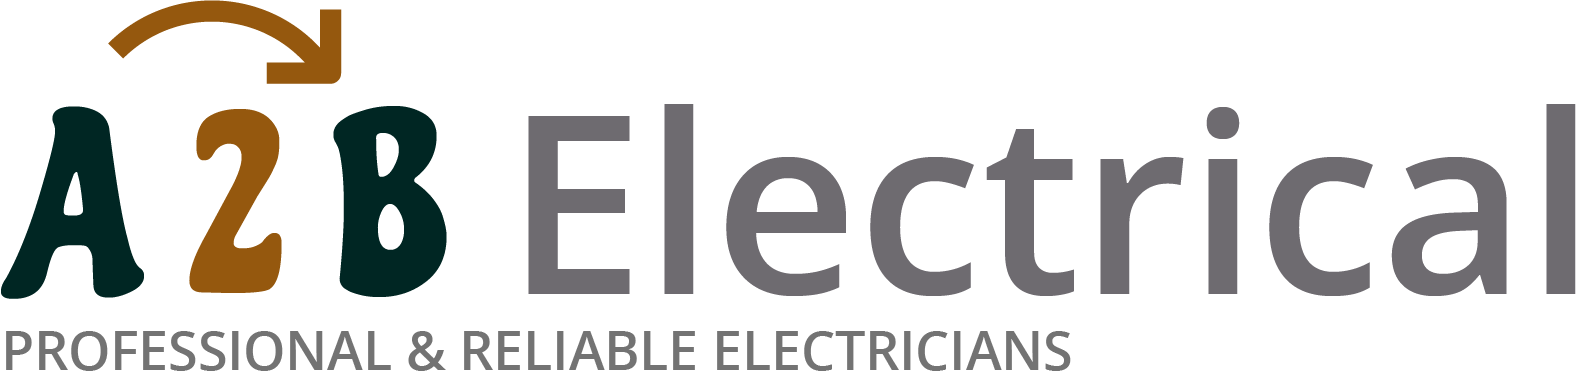 If you have electrical wiring problems in Merton, we can provide an electrician to have a look for you.